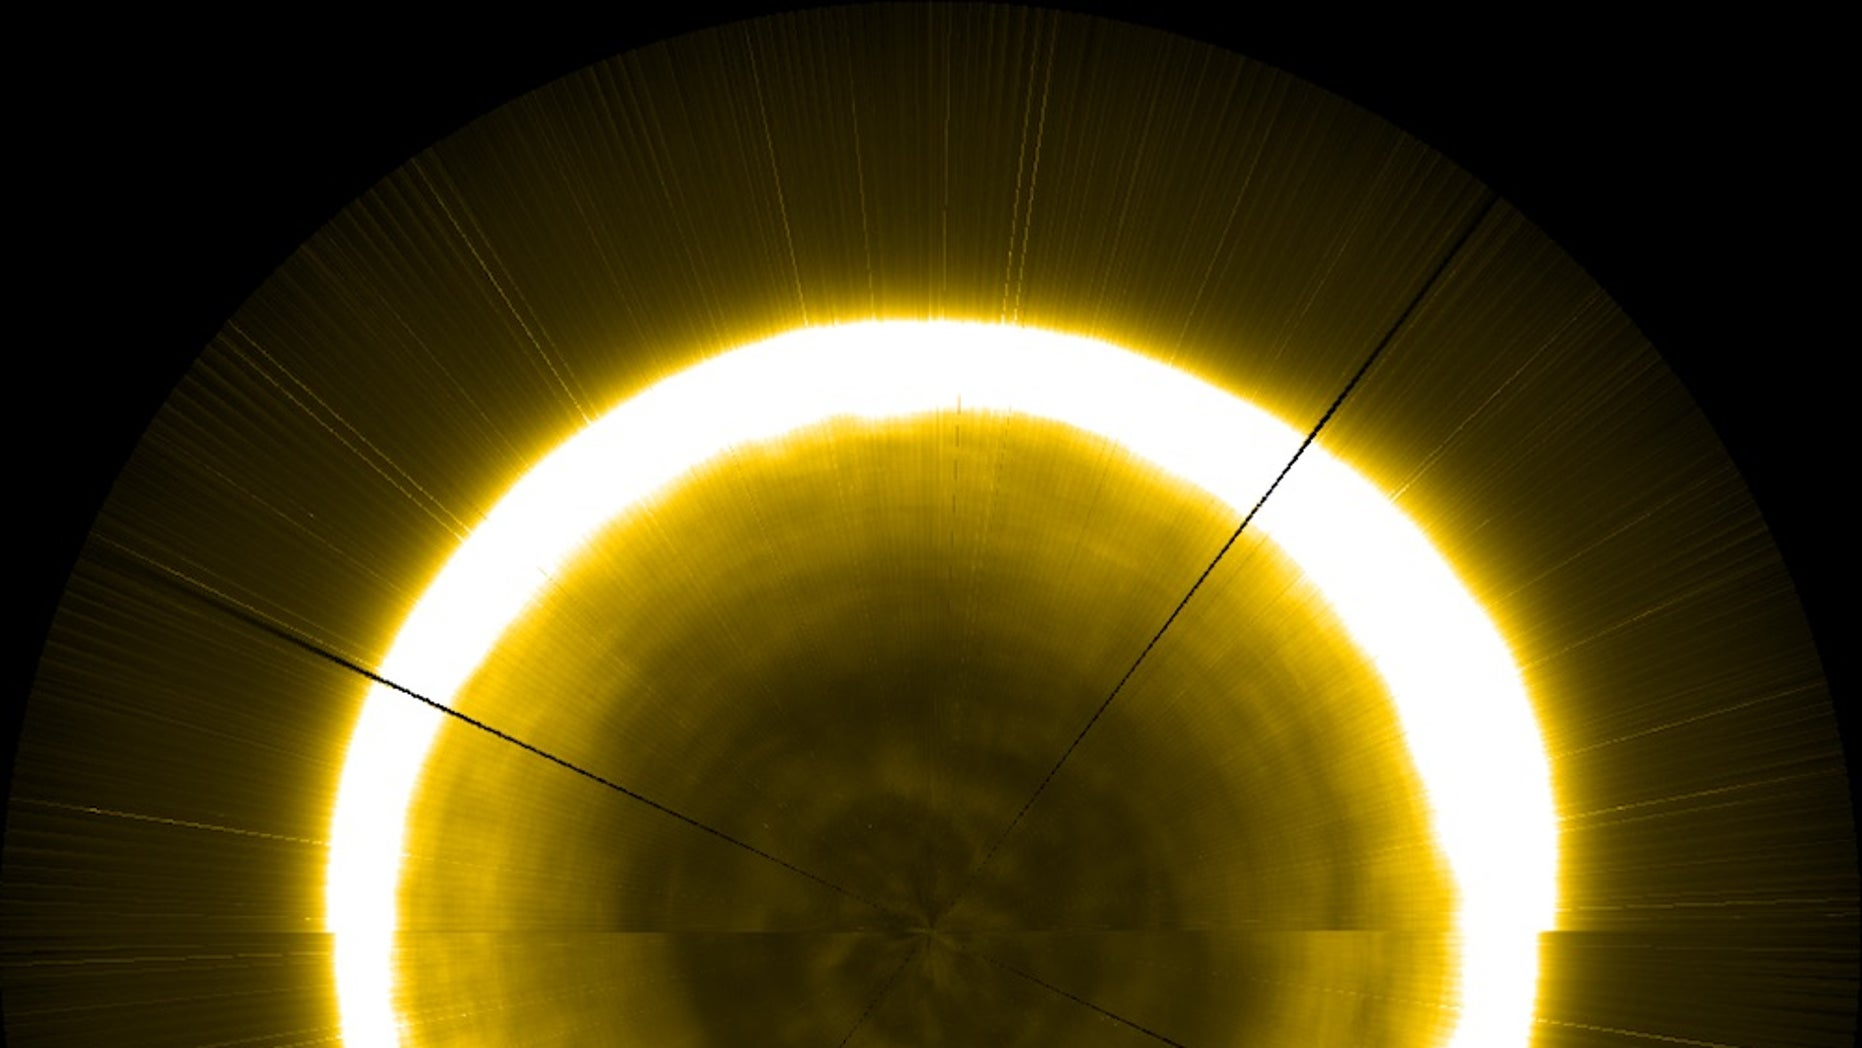 A gorgeous composite image of the sun's north pole, created using footage from the European Space Agency's Proba-2 satellite. Proba-2 launched in 2009 to observe space weather.